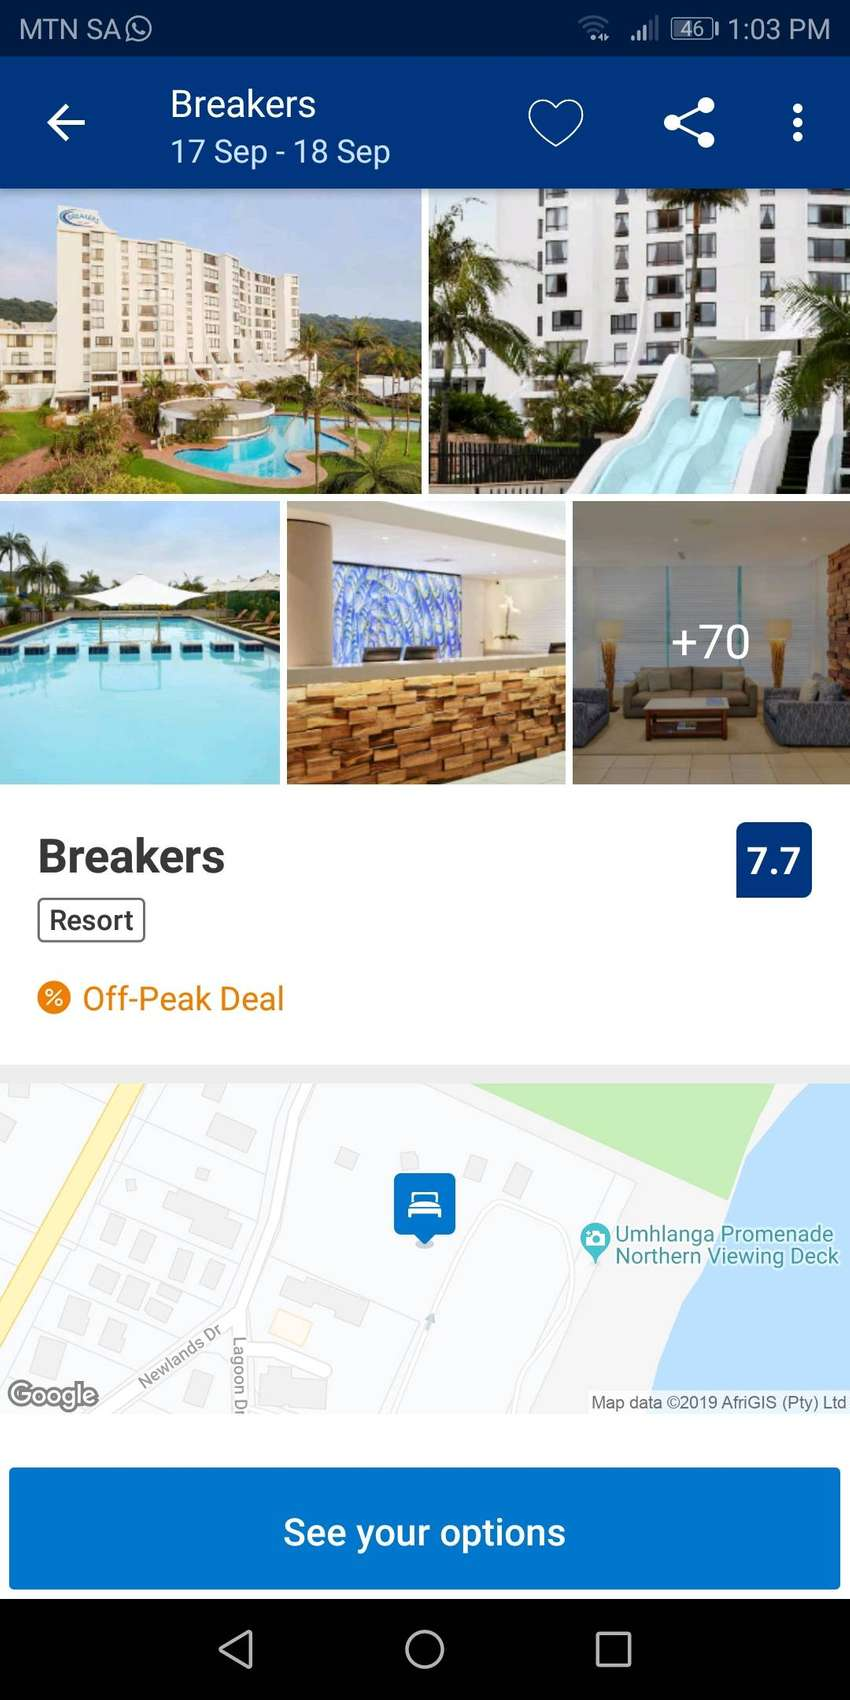 Breakers umslanga for 4 adults and 2 children 0